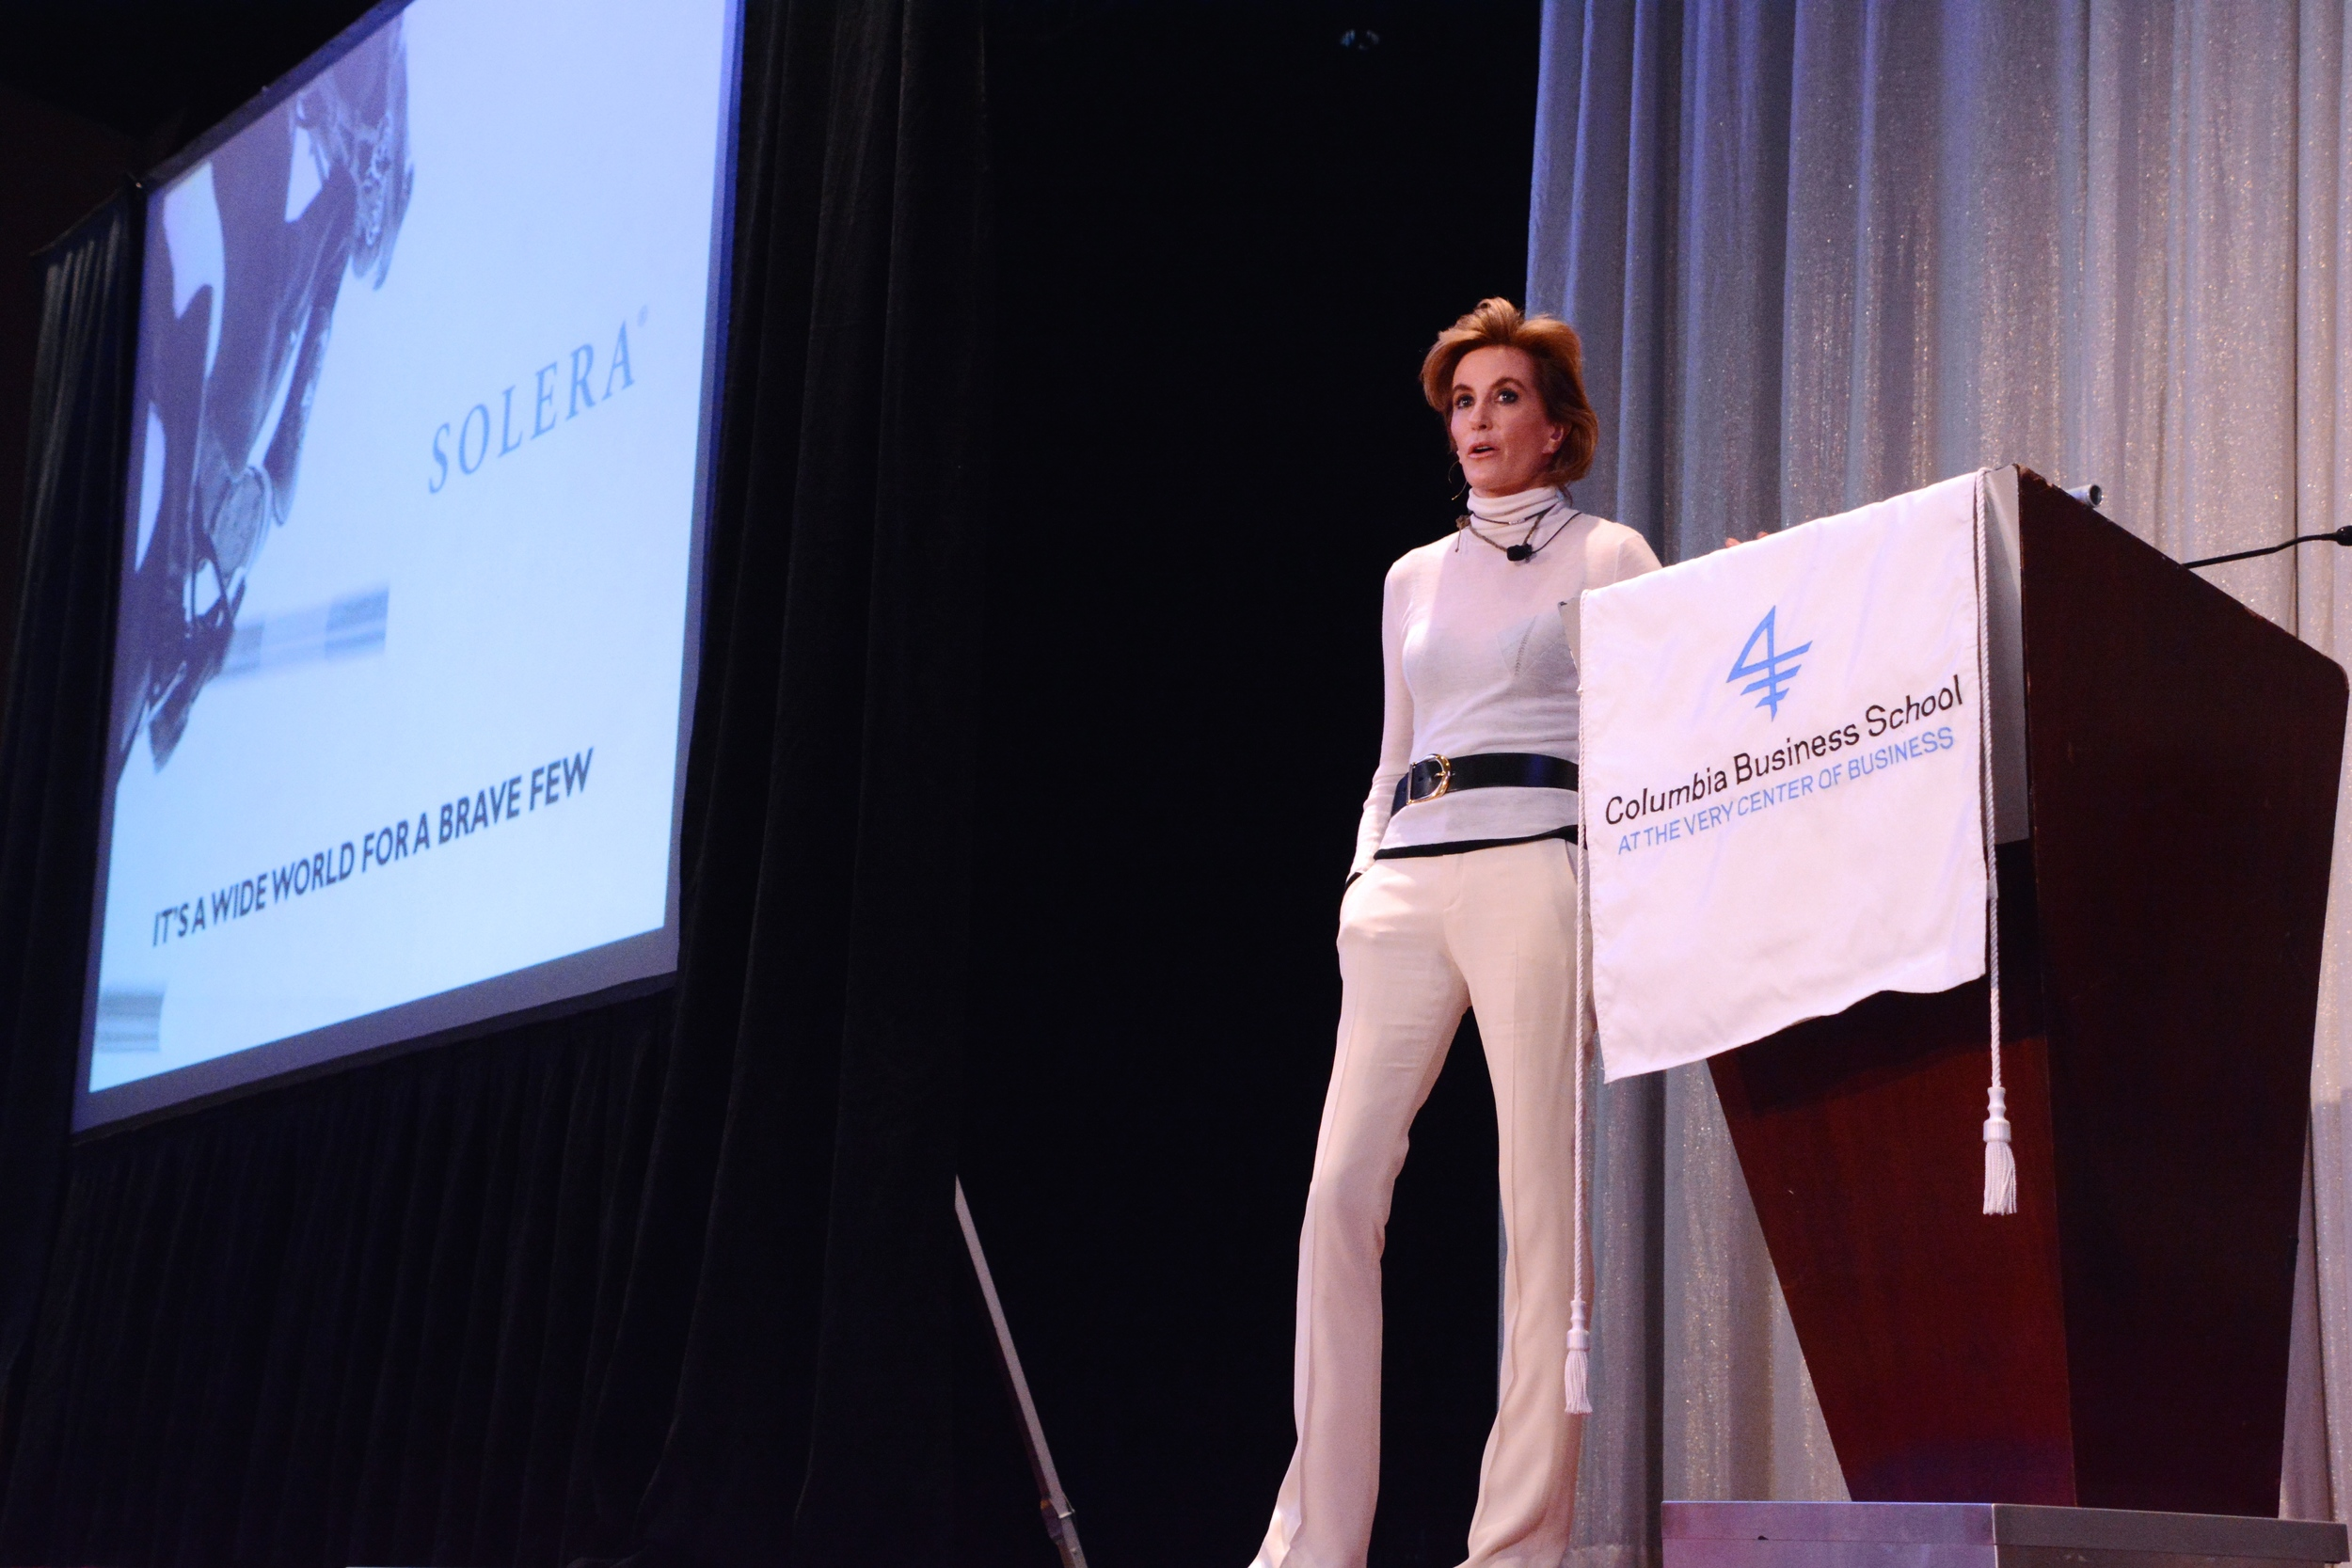 Molly Ashby, Founder and CEO of Solera Capital